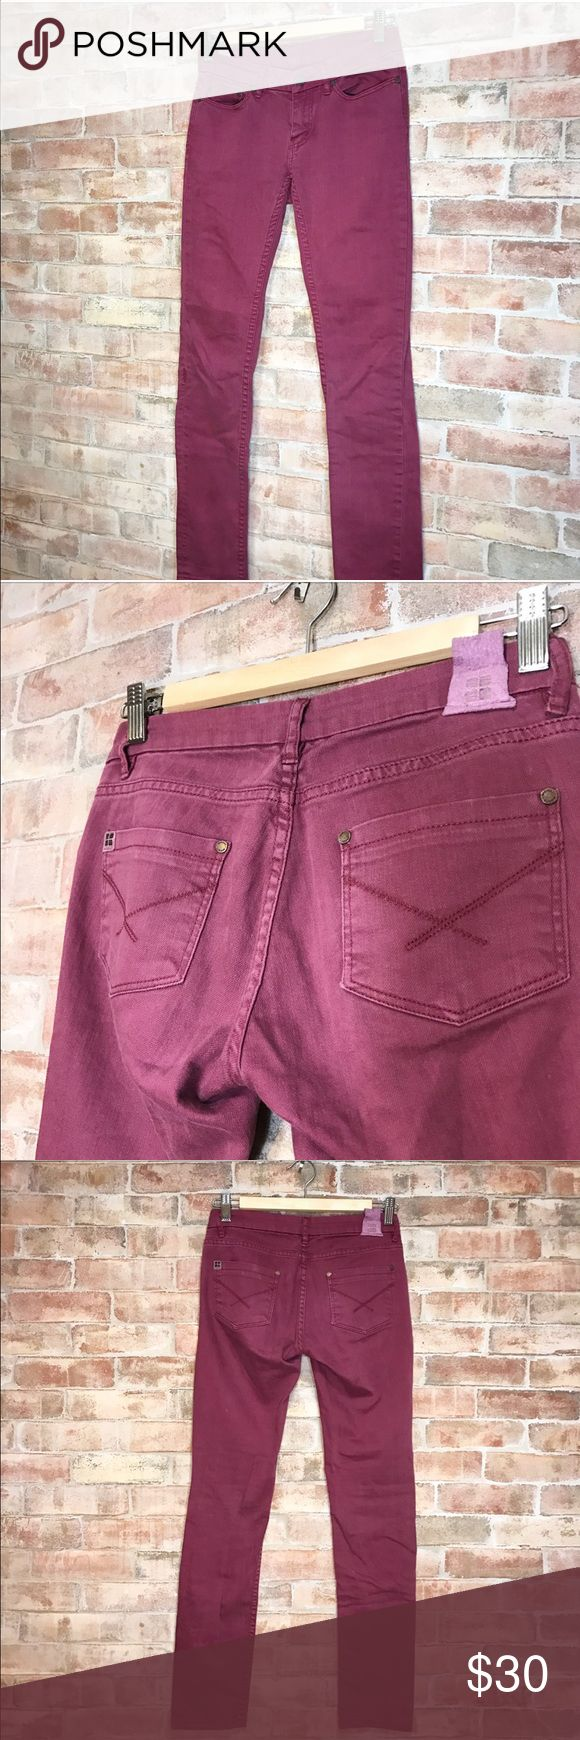 UO INSIGHT Maroon Skinny Jeans Urban Outfitters Insight skinny jeans in a maroon plum color. Worn a couple of times; don't fit anymore. Excellent condition. Urban Outfitters Jeans Skinny